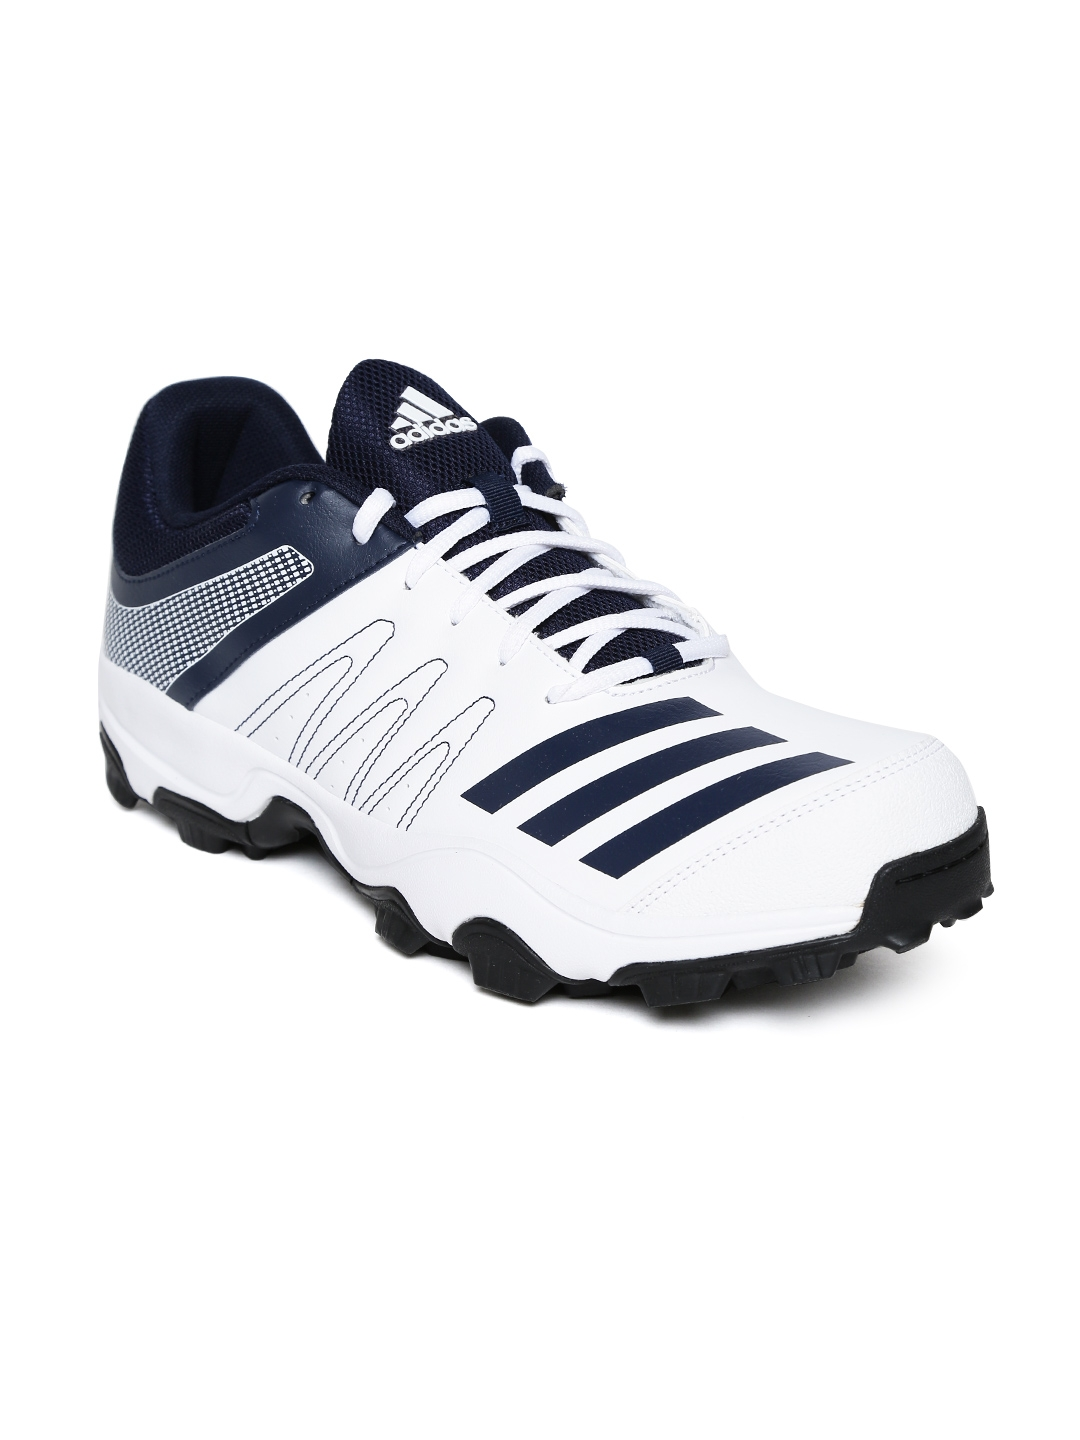 Adidas Spikes Shoes In India